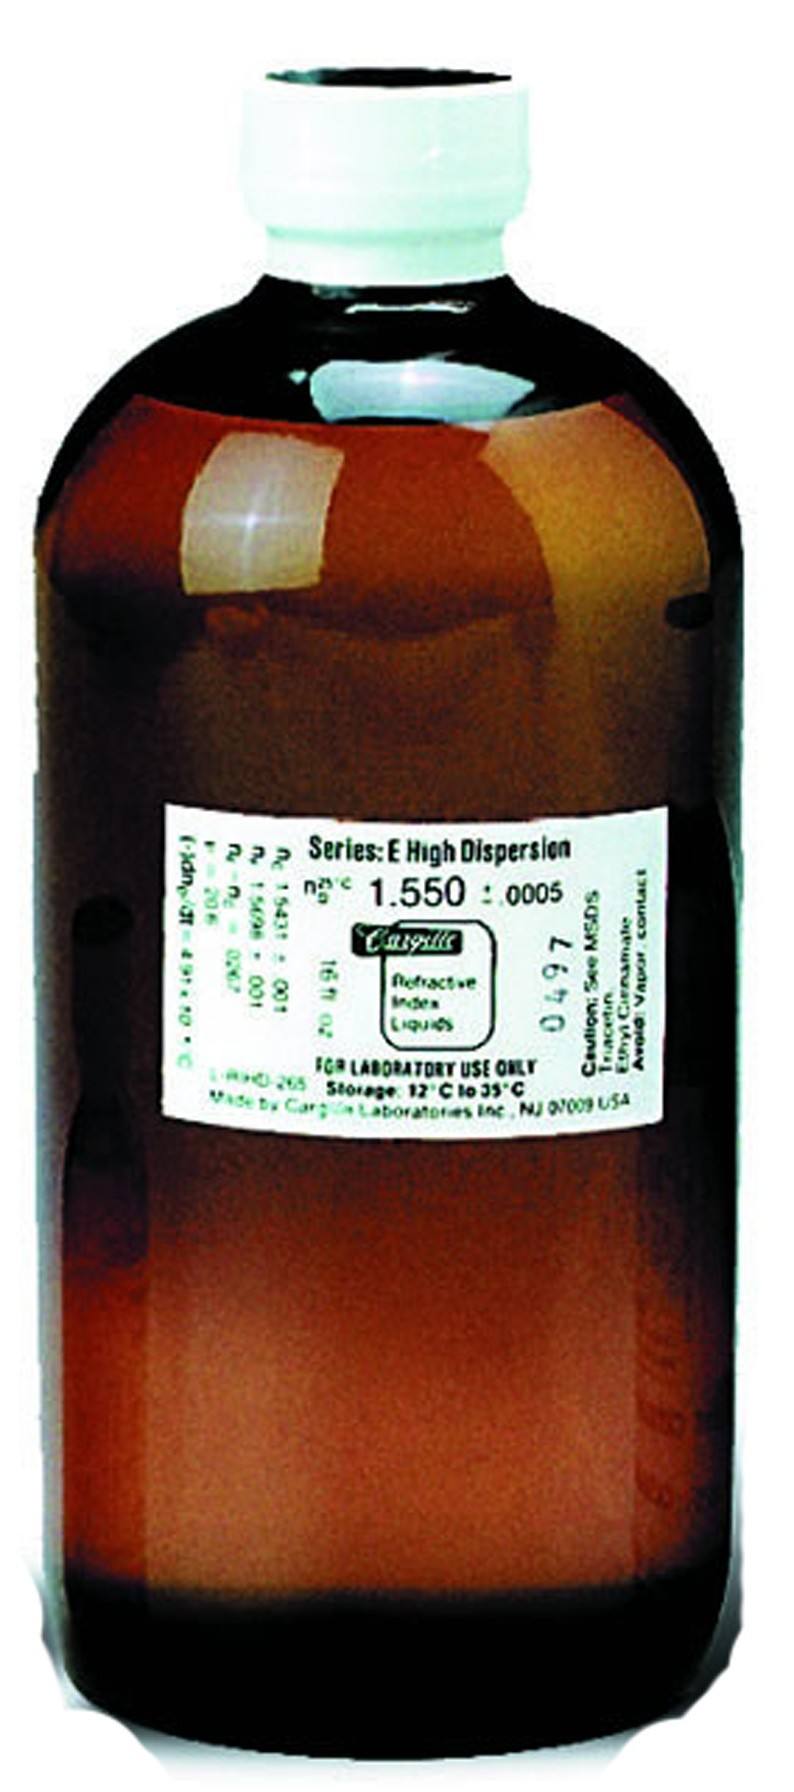 Cargille Refractive Index Oil